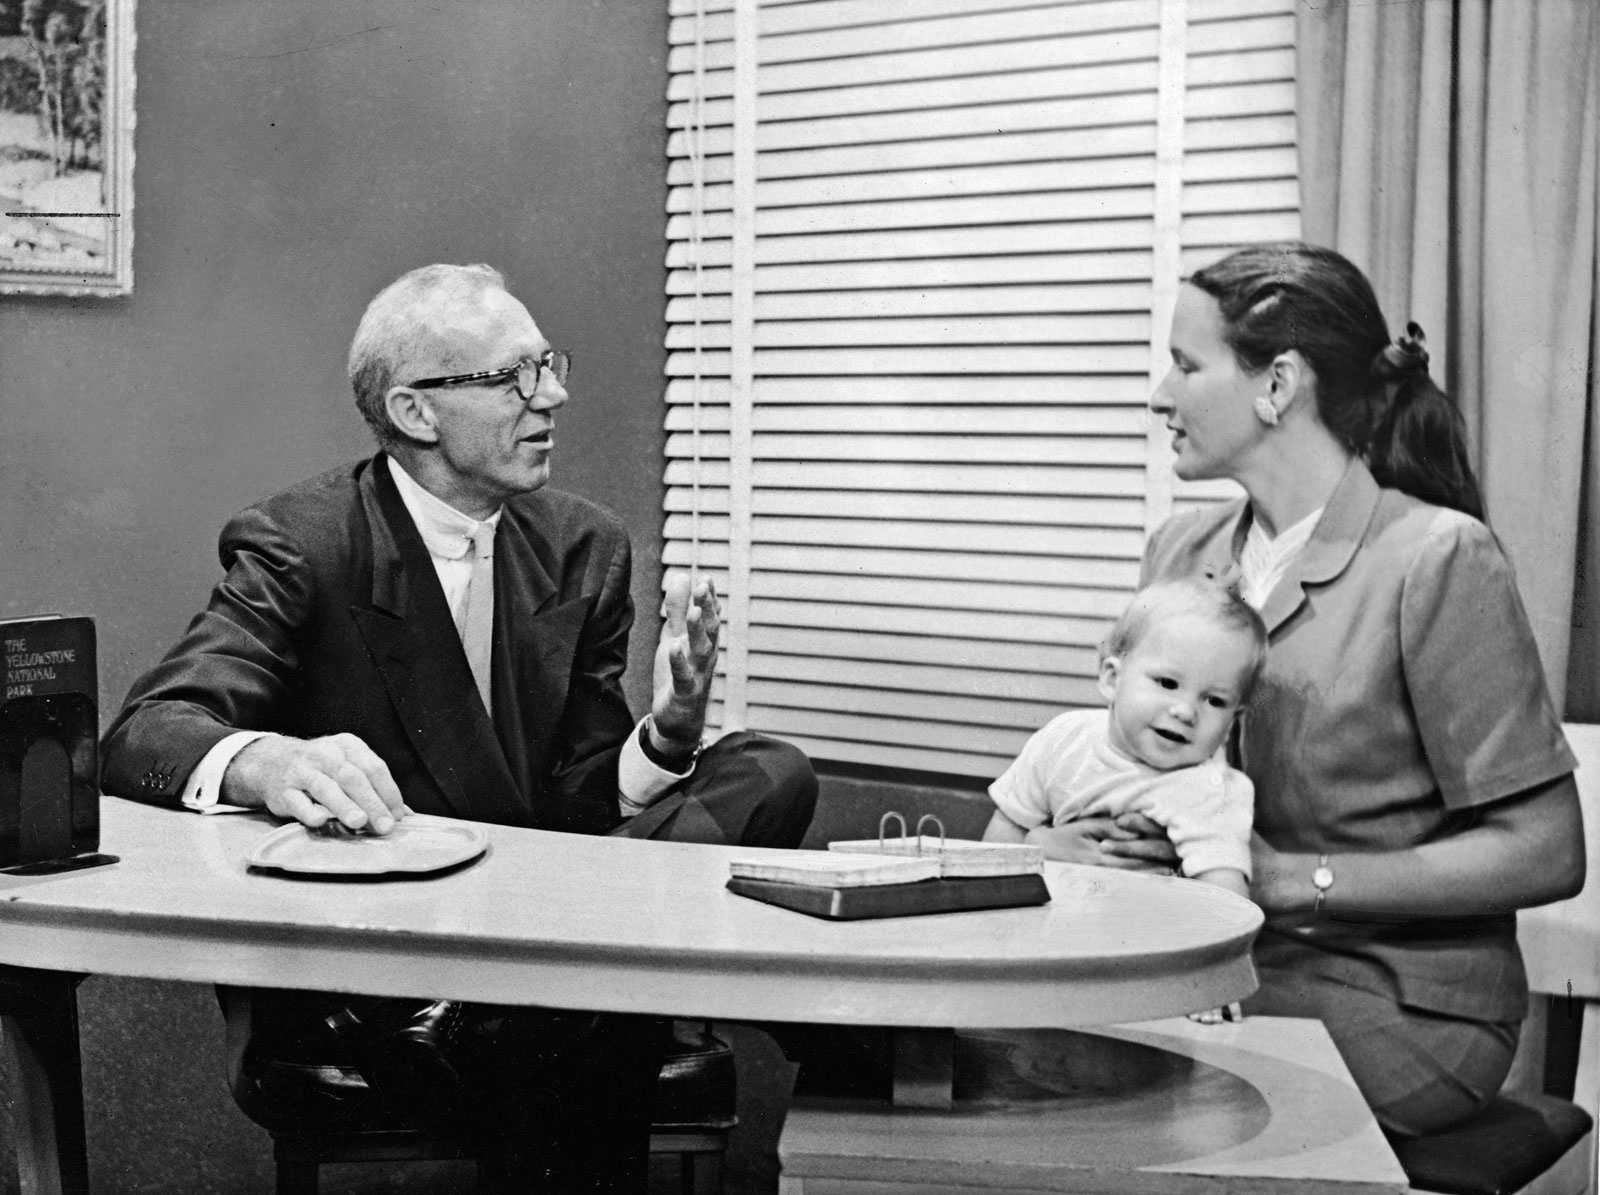 dr benjamin spock child care controversy and opposition against vietnam war